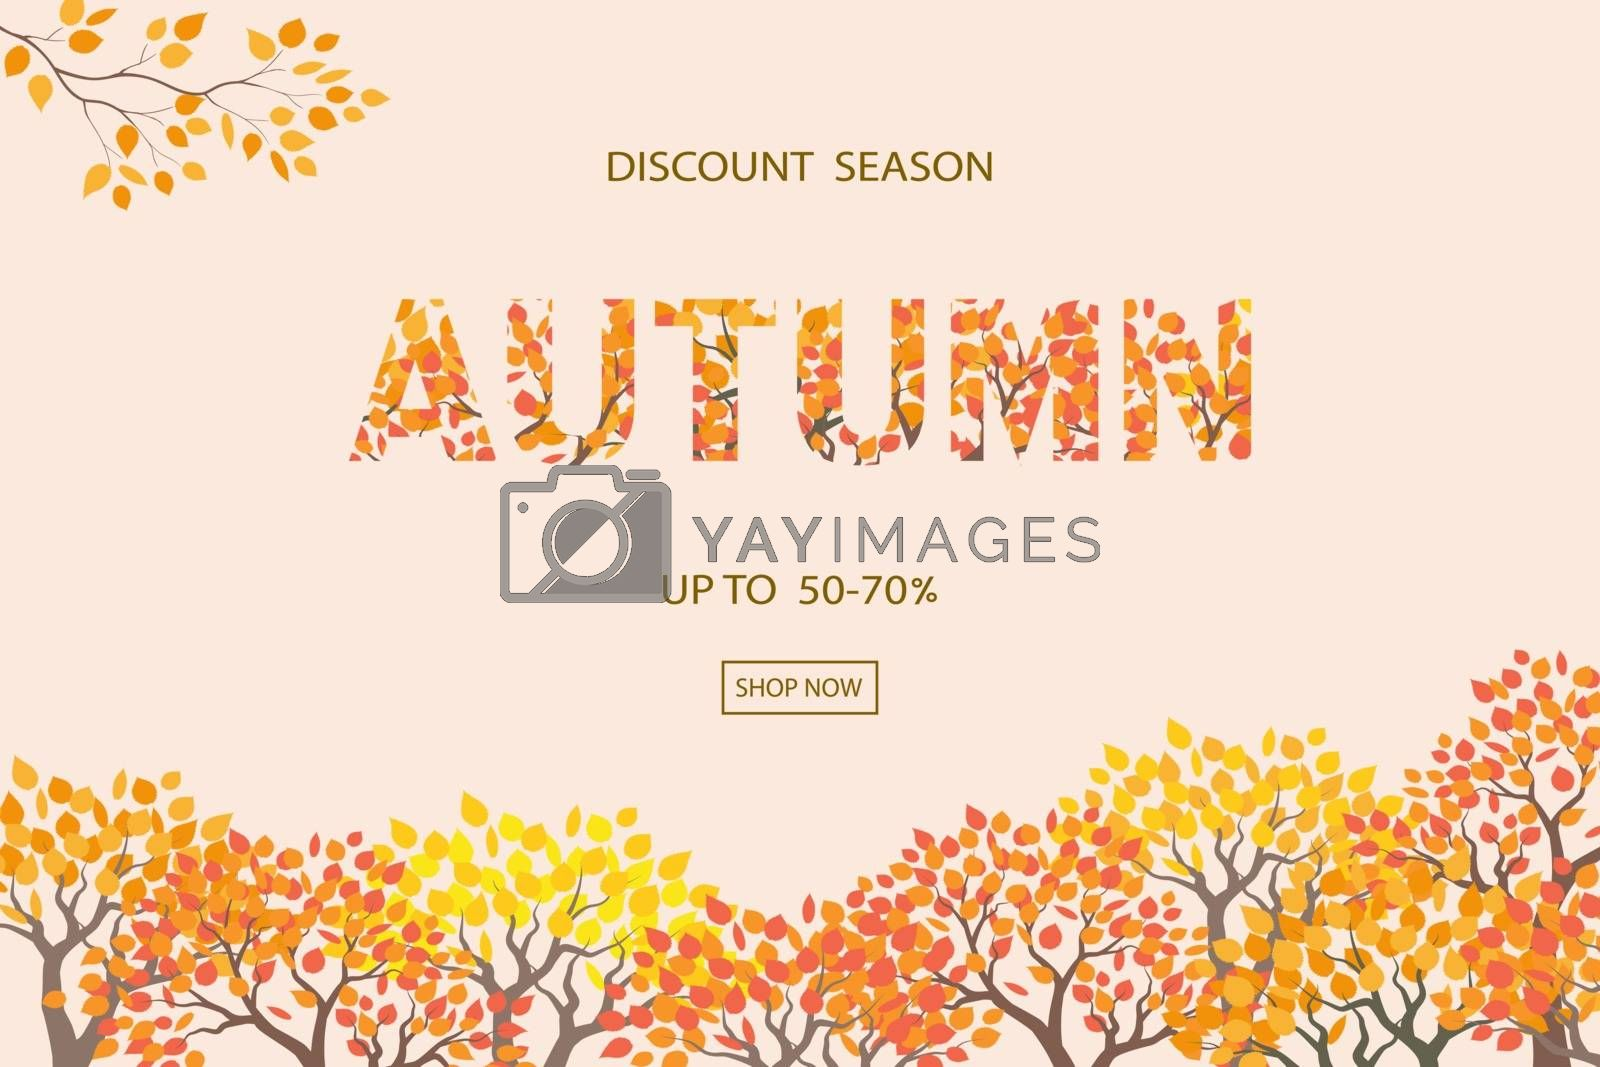 Autumn or Fall background,discount season with text for shopping promotion,banner,poster,flyer or website by PIMPAKA